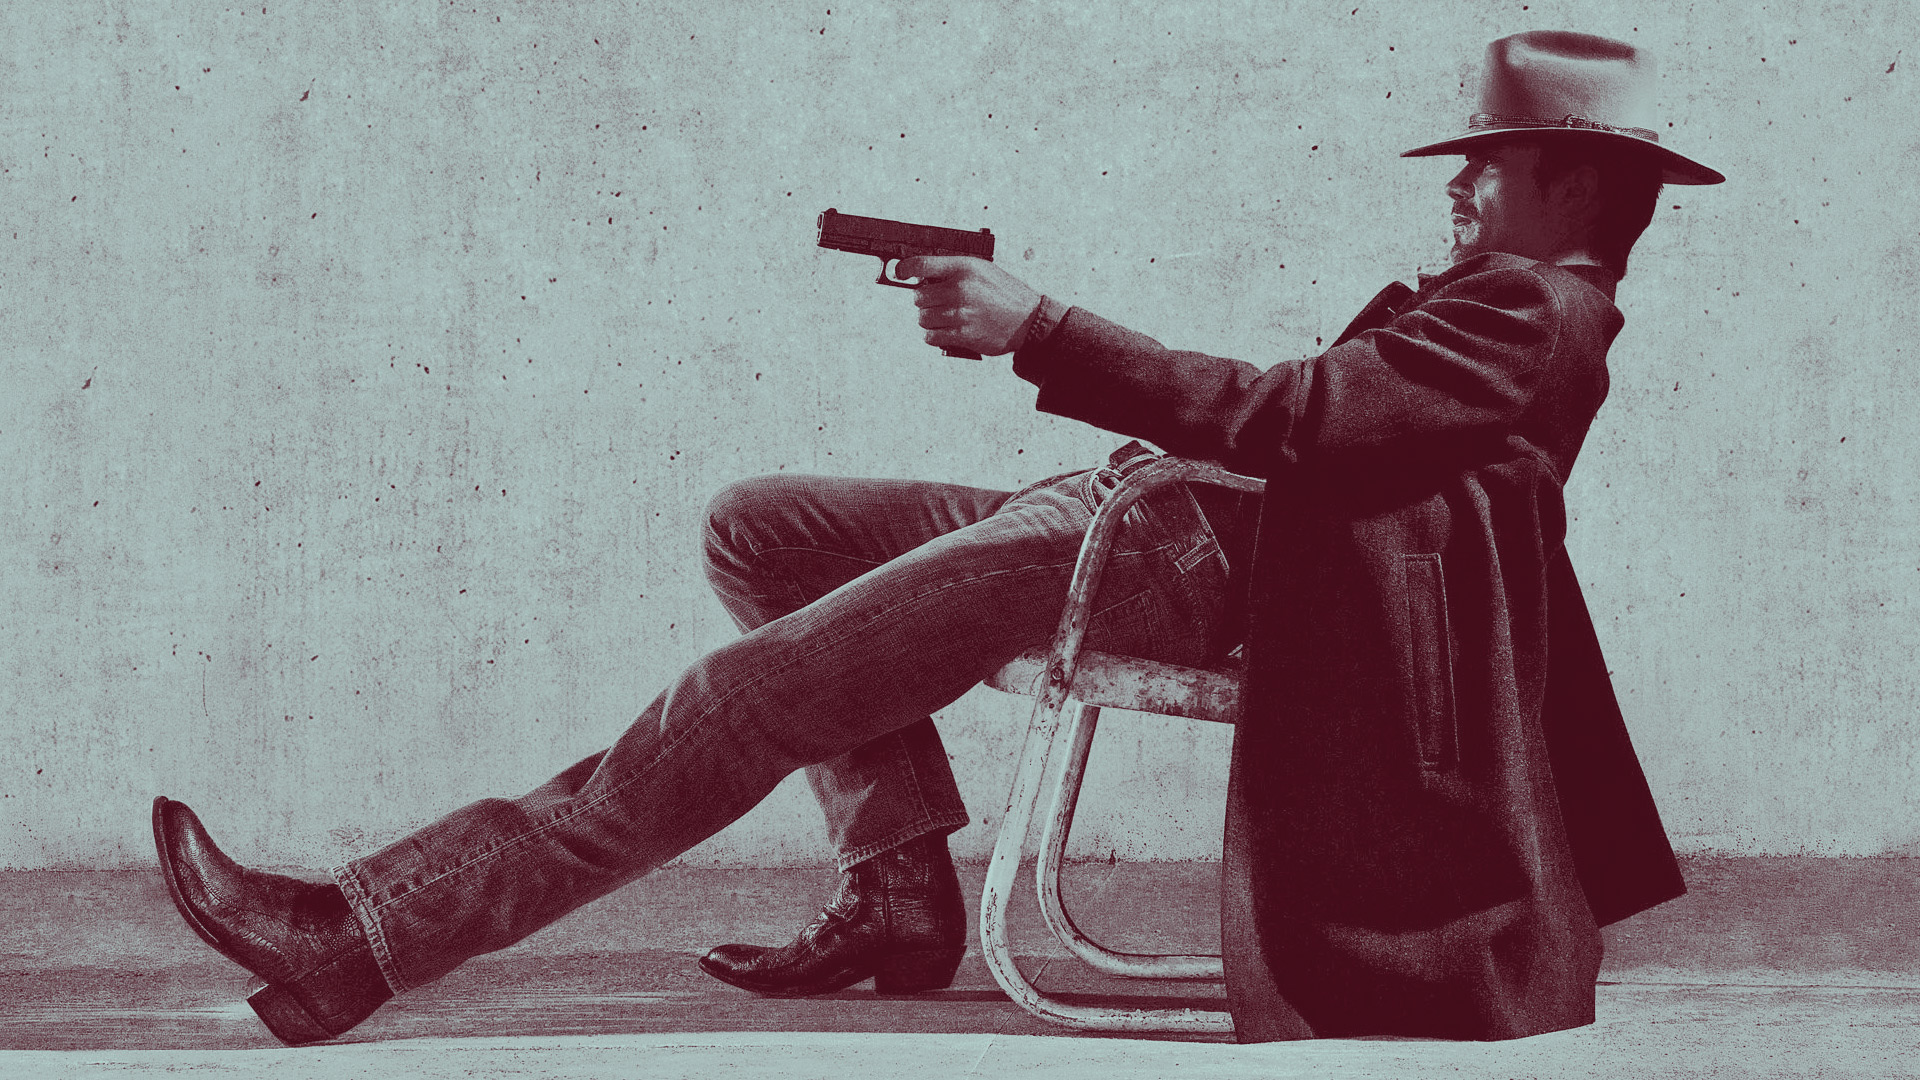 Justified Wallpapers, Pictures, Images